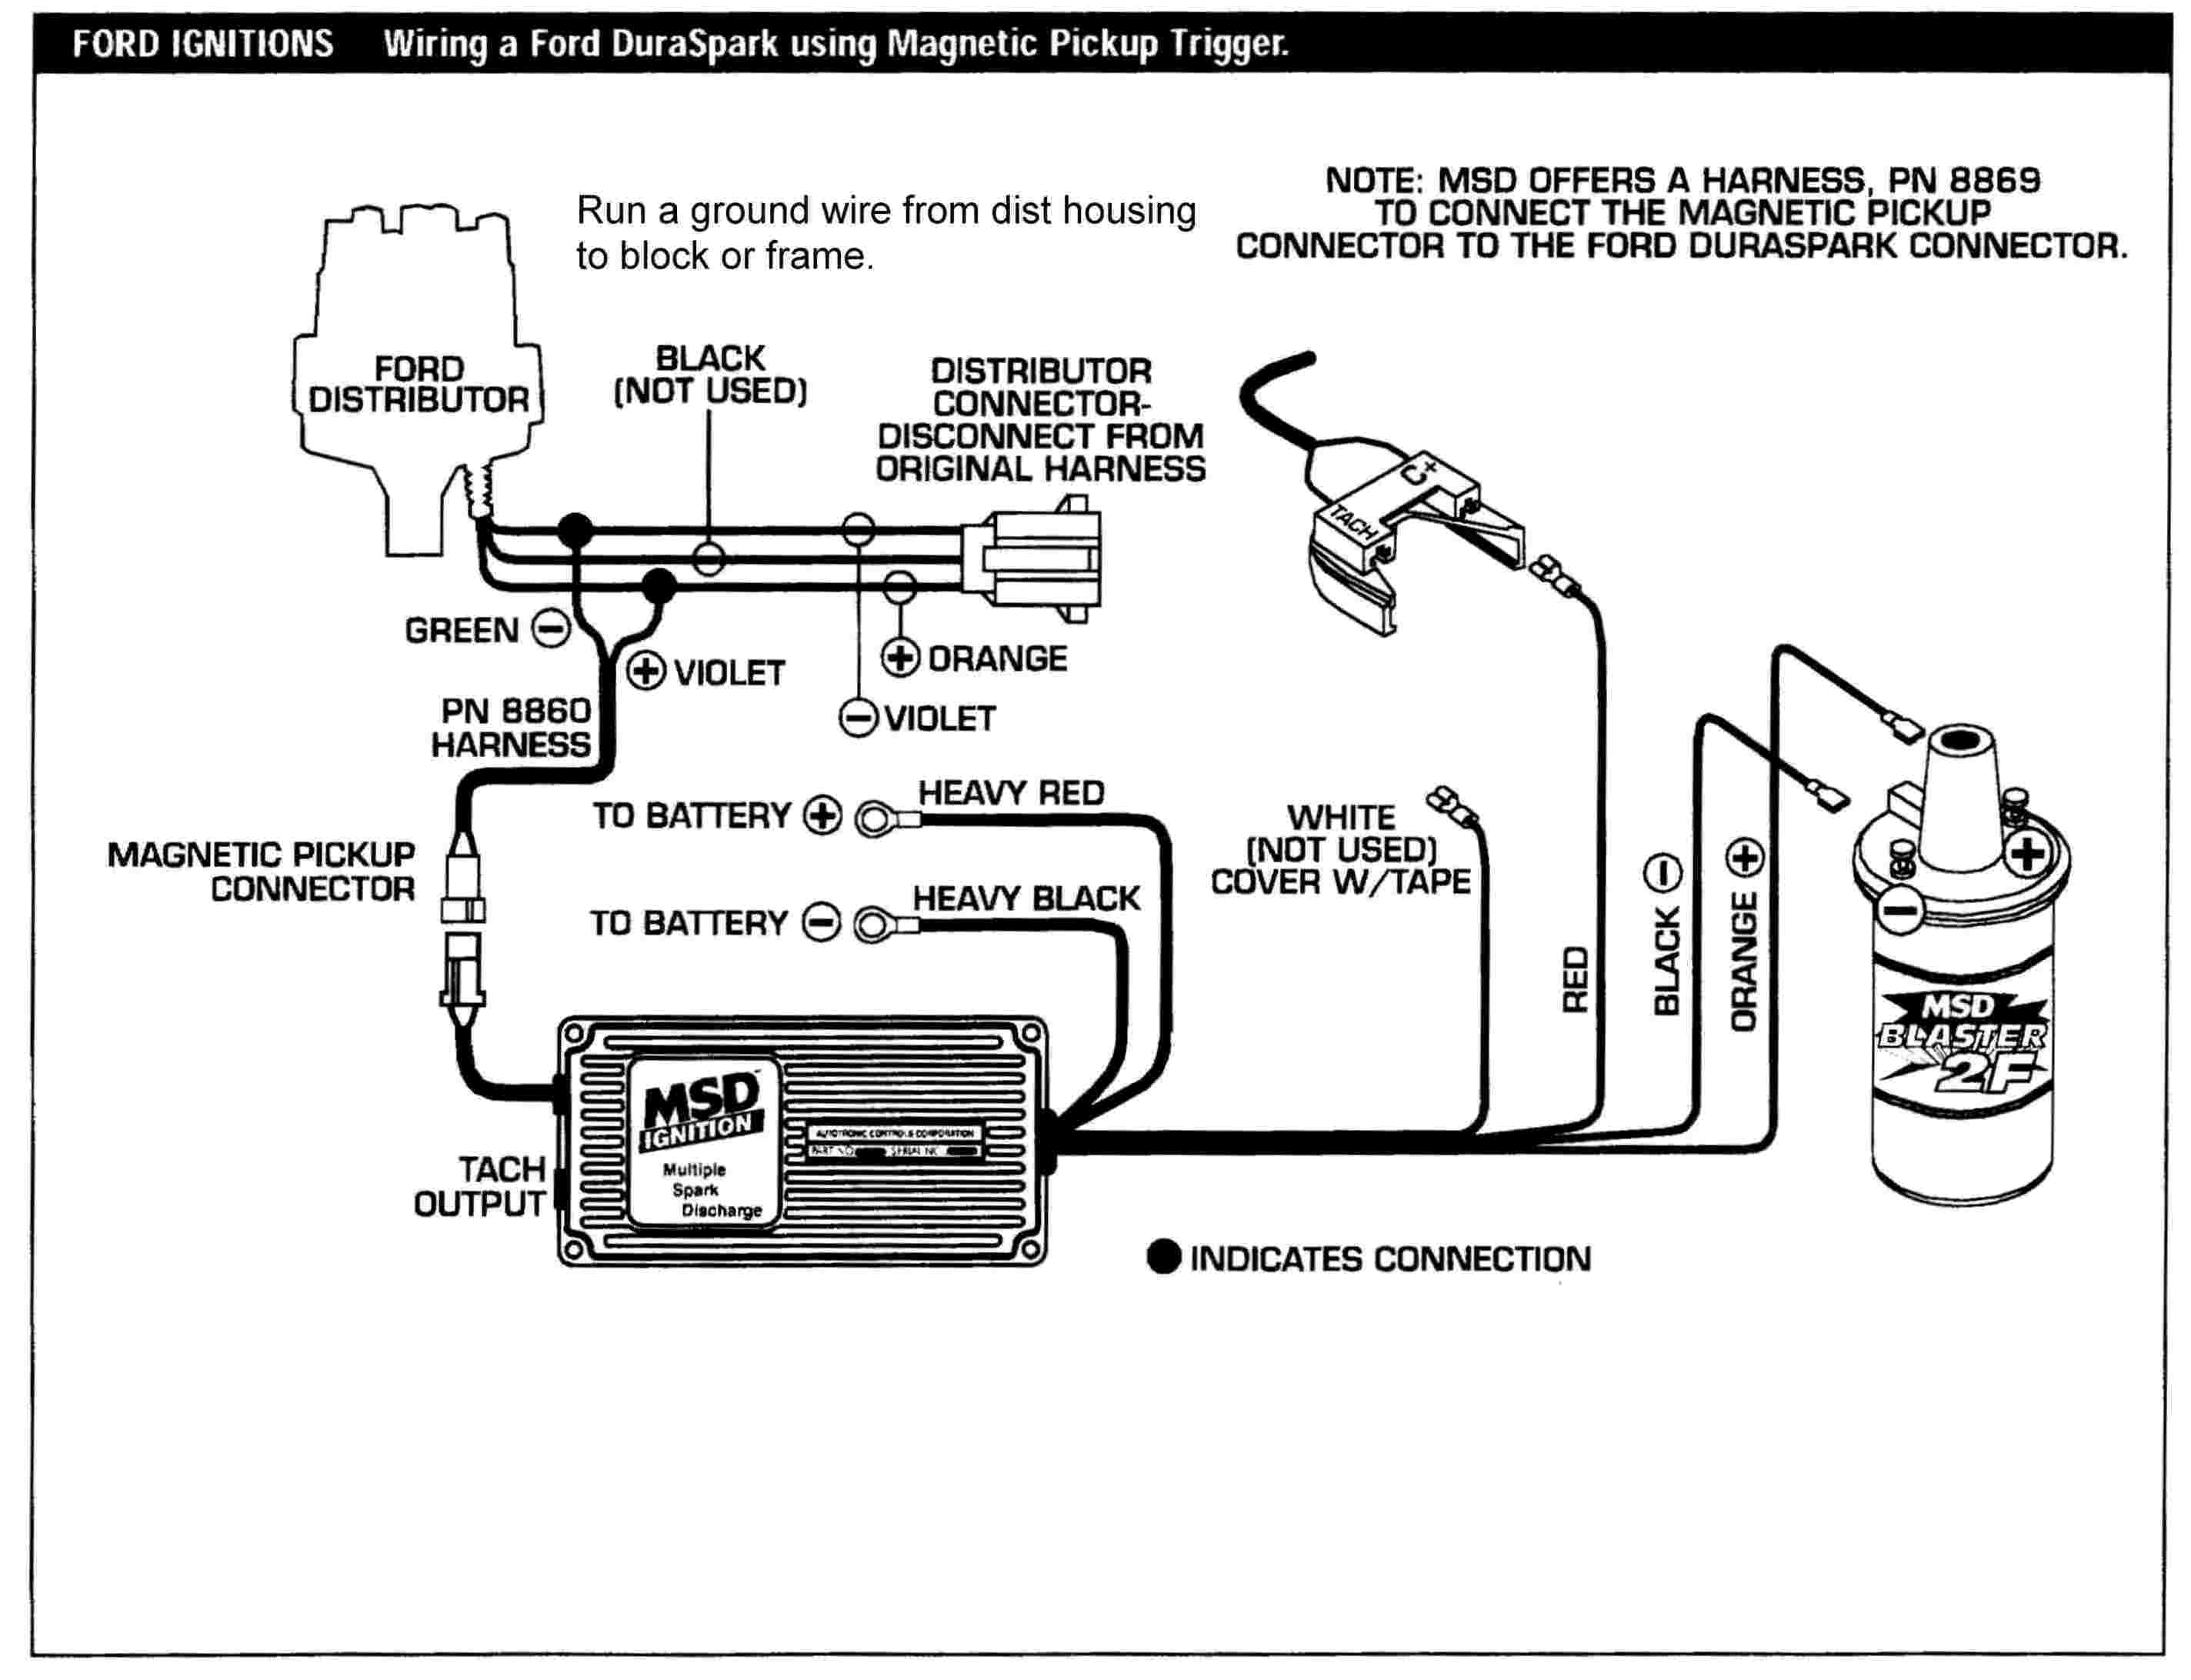 ignition wiring diagram likewise msd hei distributor wiring diagramgm hei wiring wiring diagram rh 76 lottehaakt nl